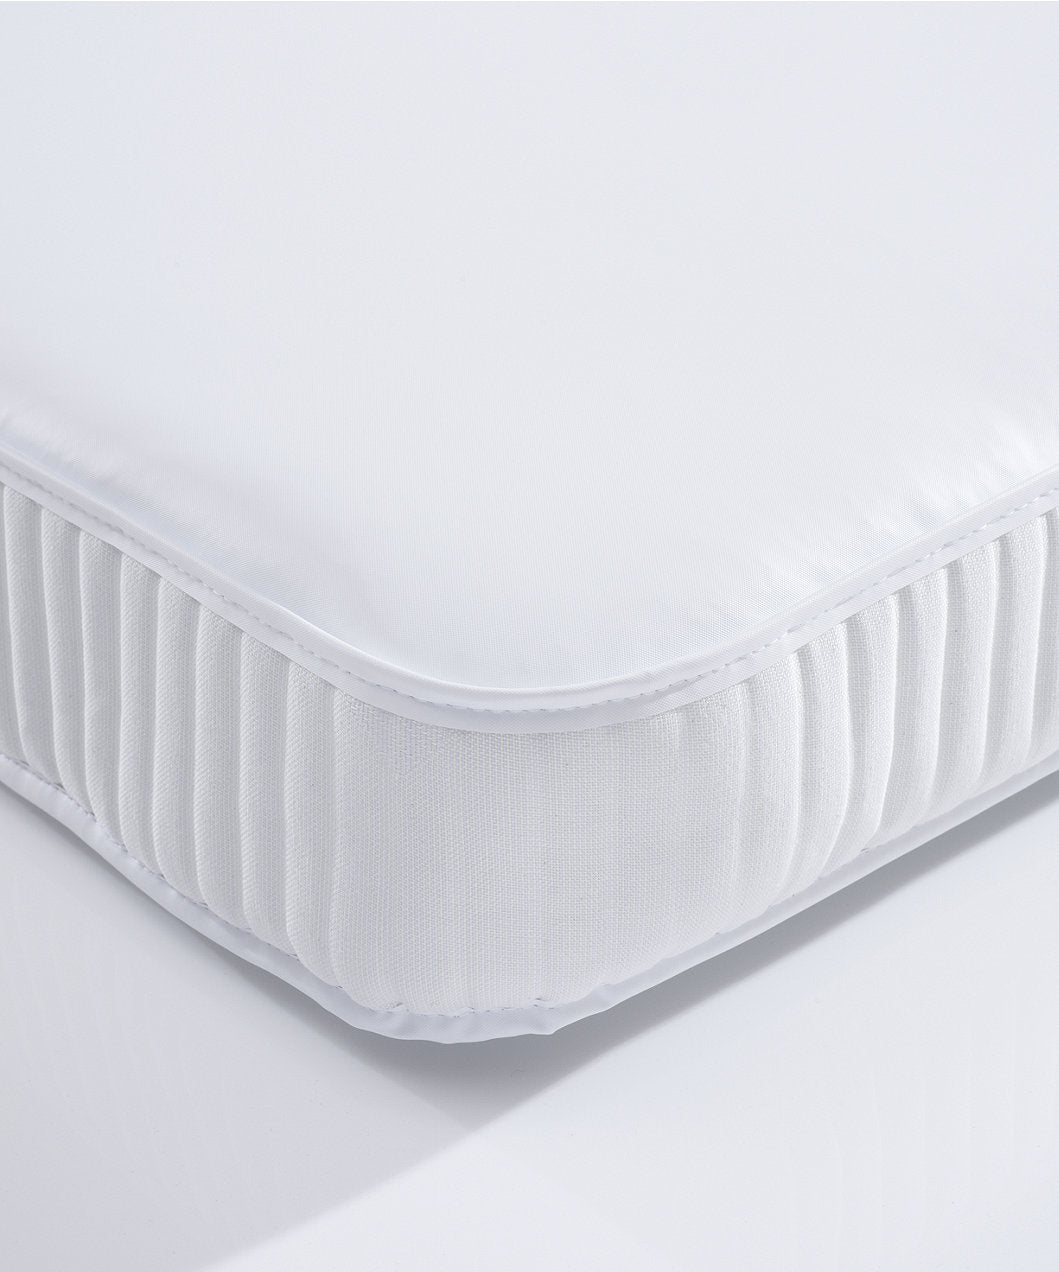 mothercare anti-allergy spring cot bed mattress (70x140cm)